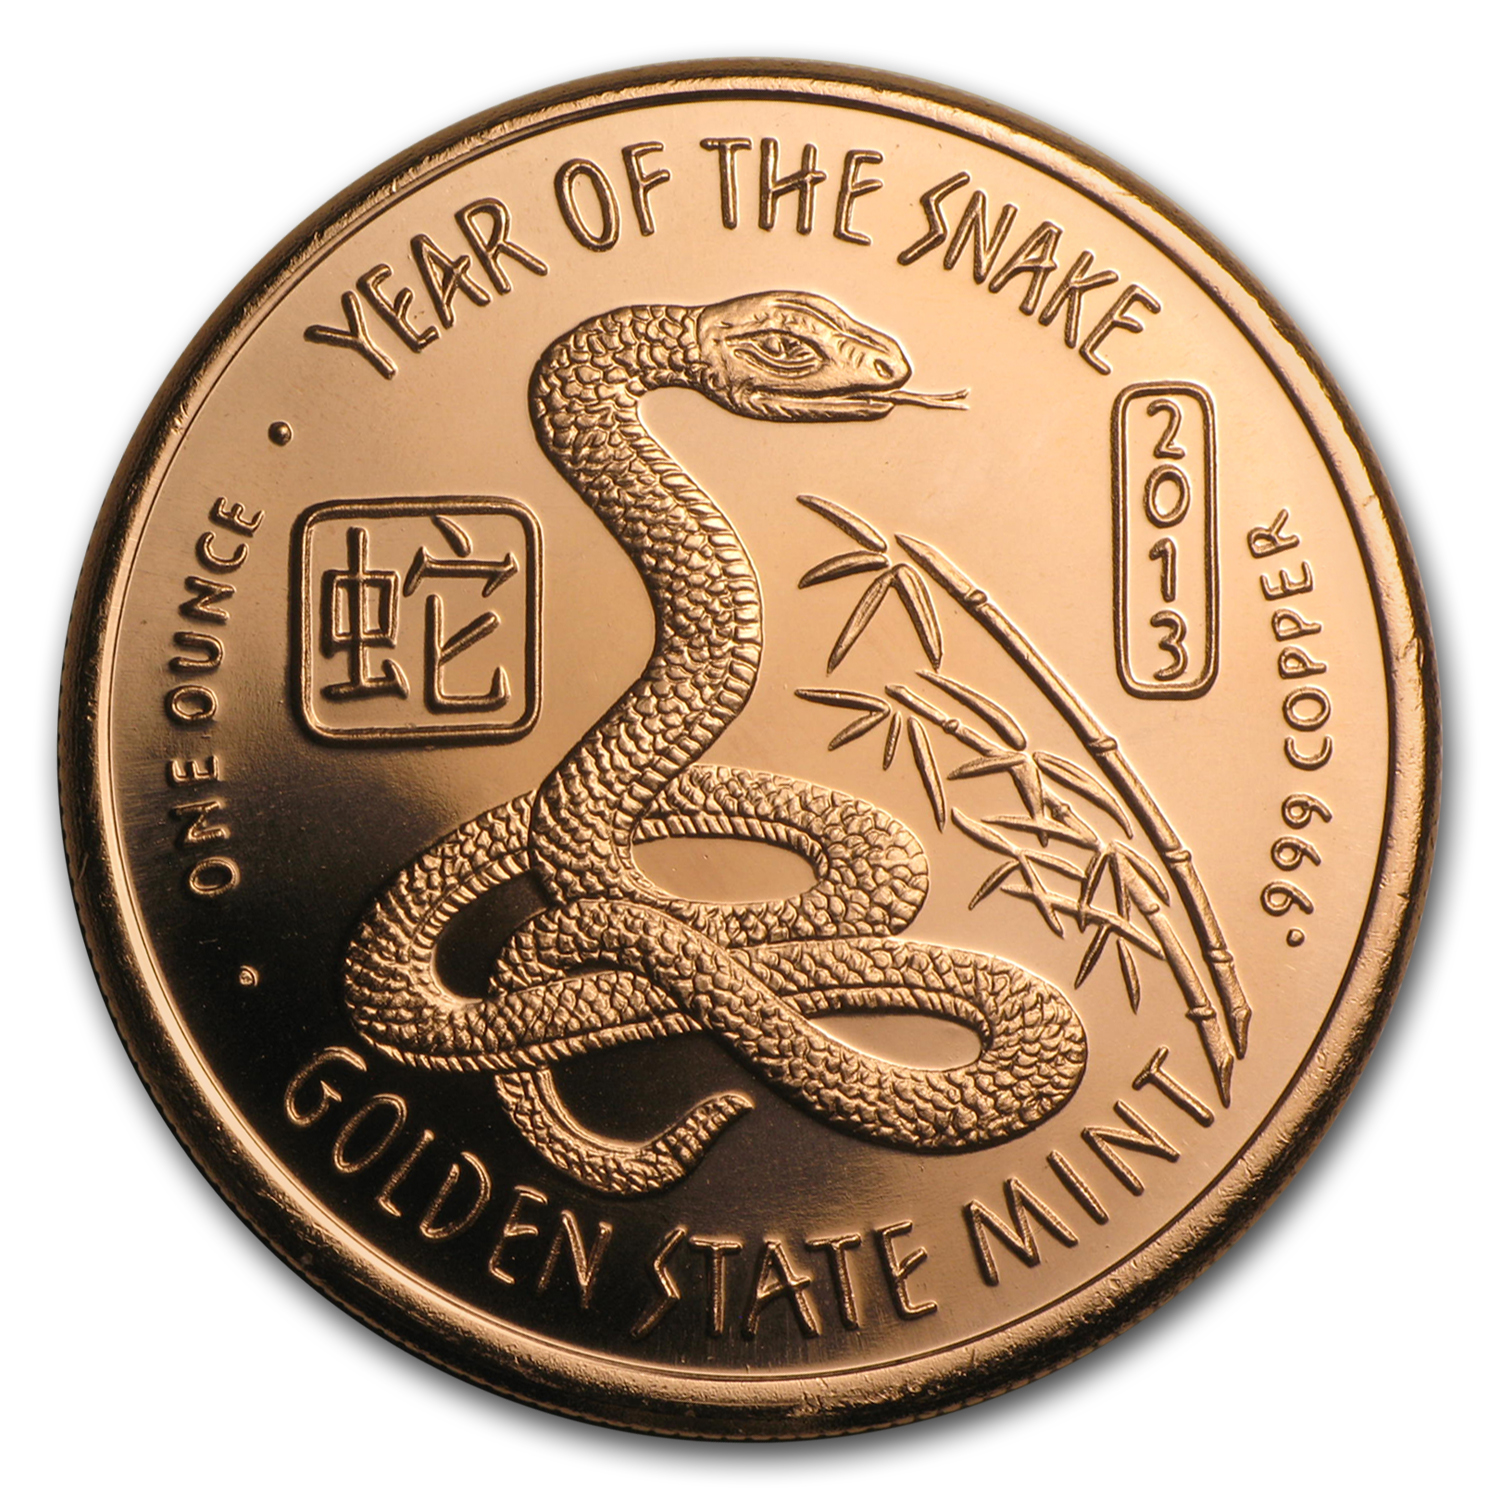 2013 1 oz Copper Round - Year of the Snake